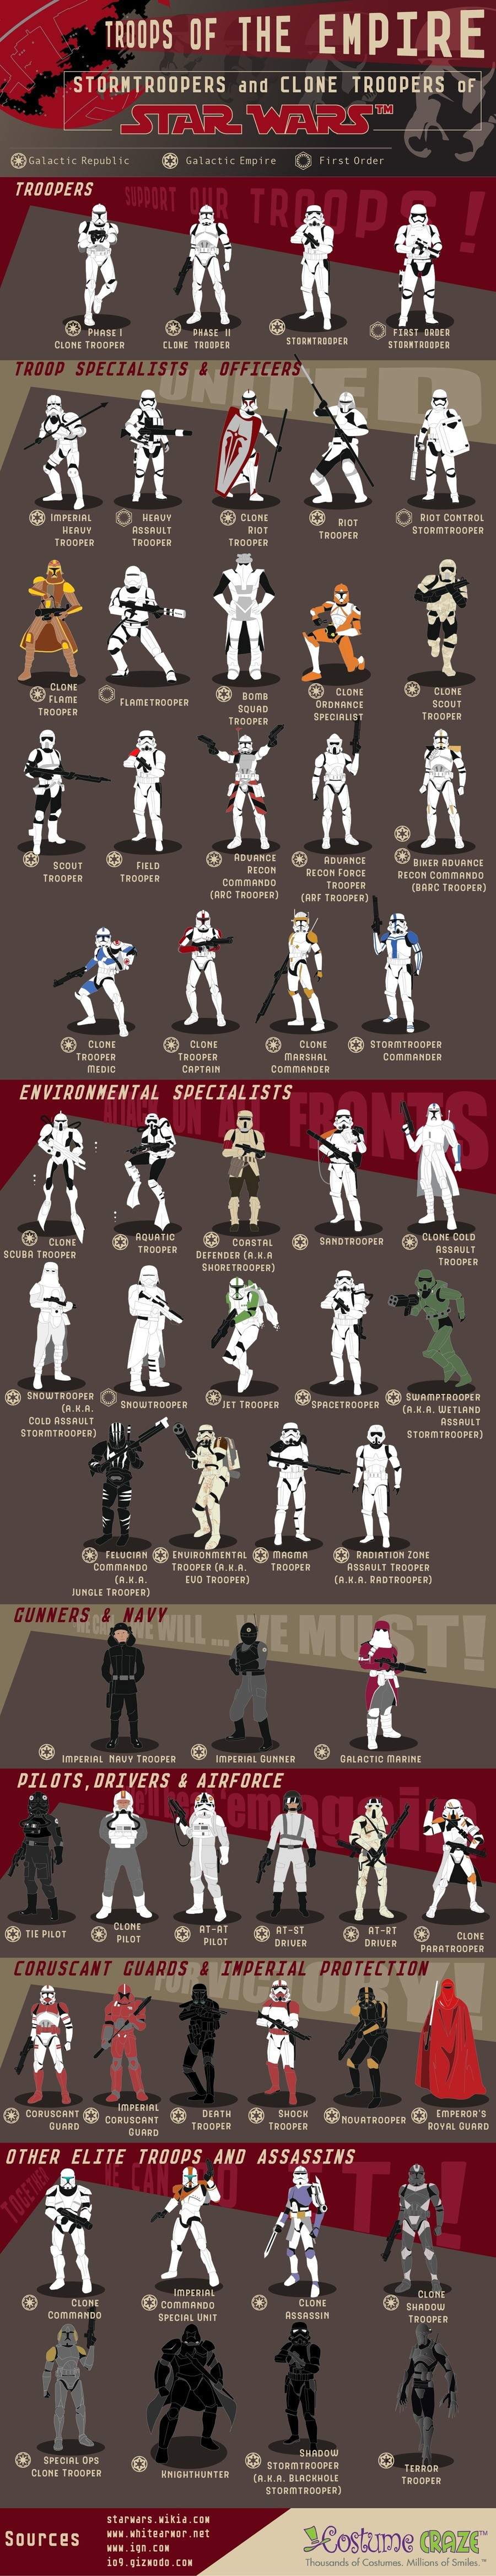 60 Stormtrooper Variants. This thing is amazing - as far as I know a lot of these are no longer canon but hopefully they'll be reintroduced eventually. Here is